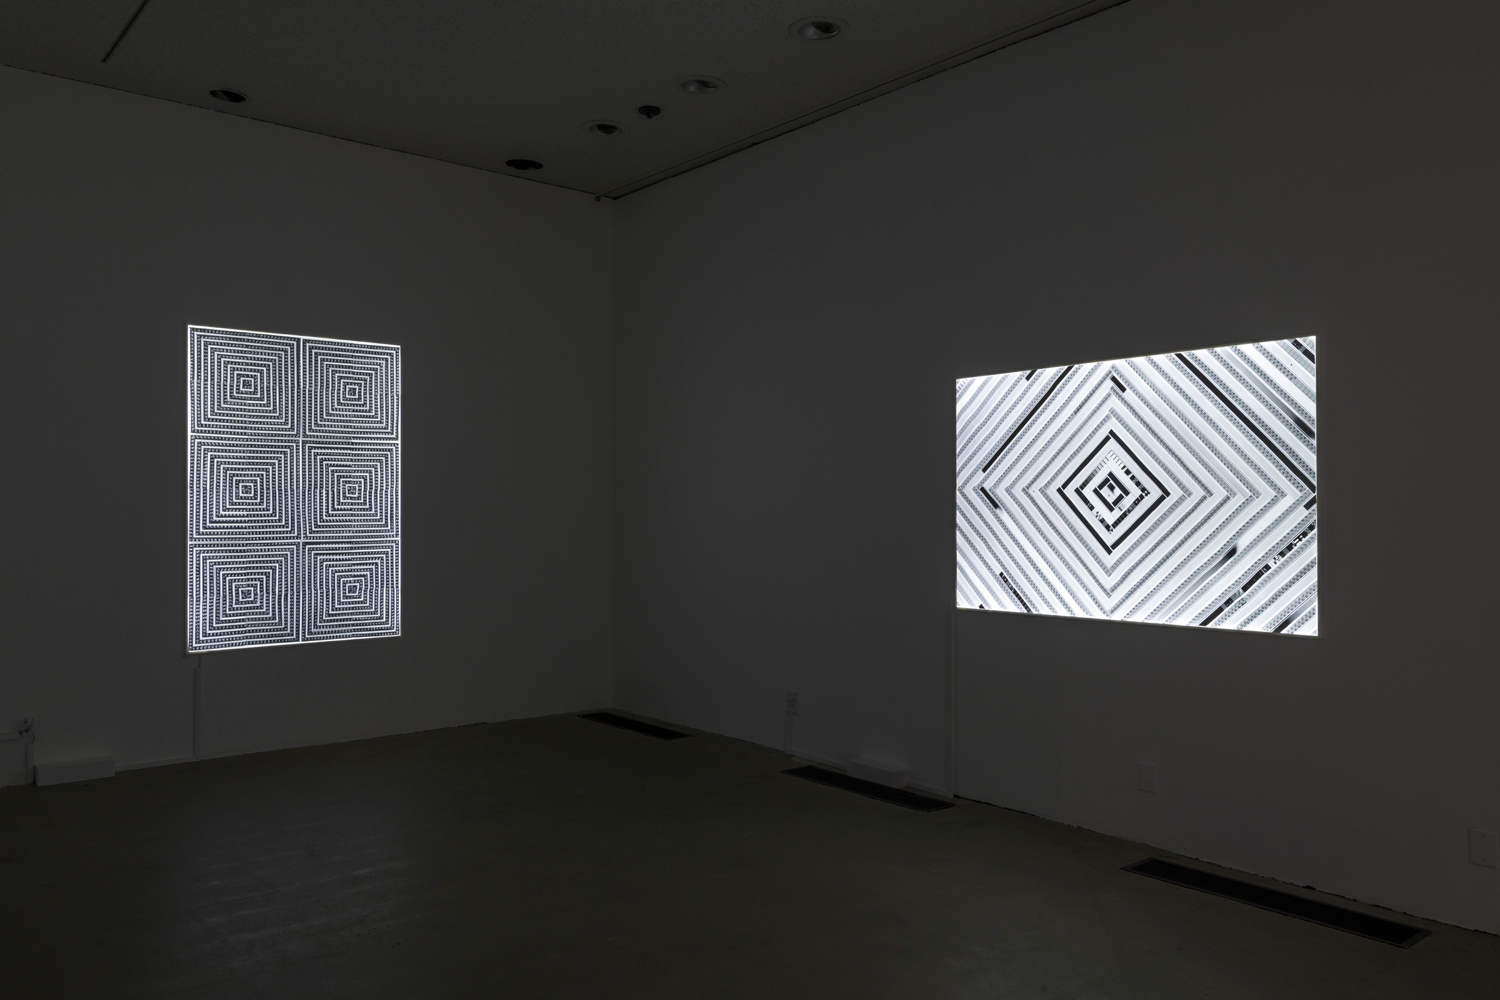 This artwork installation by the artist Sabrina Gschwandtner features one artwork hanging on the wall. This vertical artwork includes a quilt-like pattern of six different squares using black and white film strips on top of a lightbox. To the right of this work is another artwork. This horizontal artwork includes a triangular, quilt-like pattern also using black and white film strips. These film strips are mort spaced out in between each strip, so the light from the lightbox is more visible.